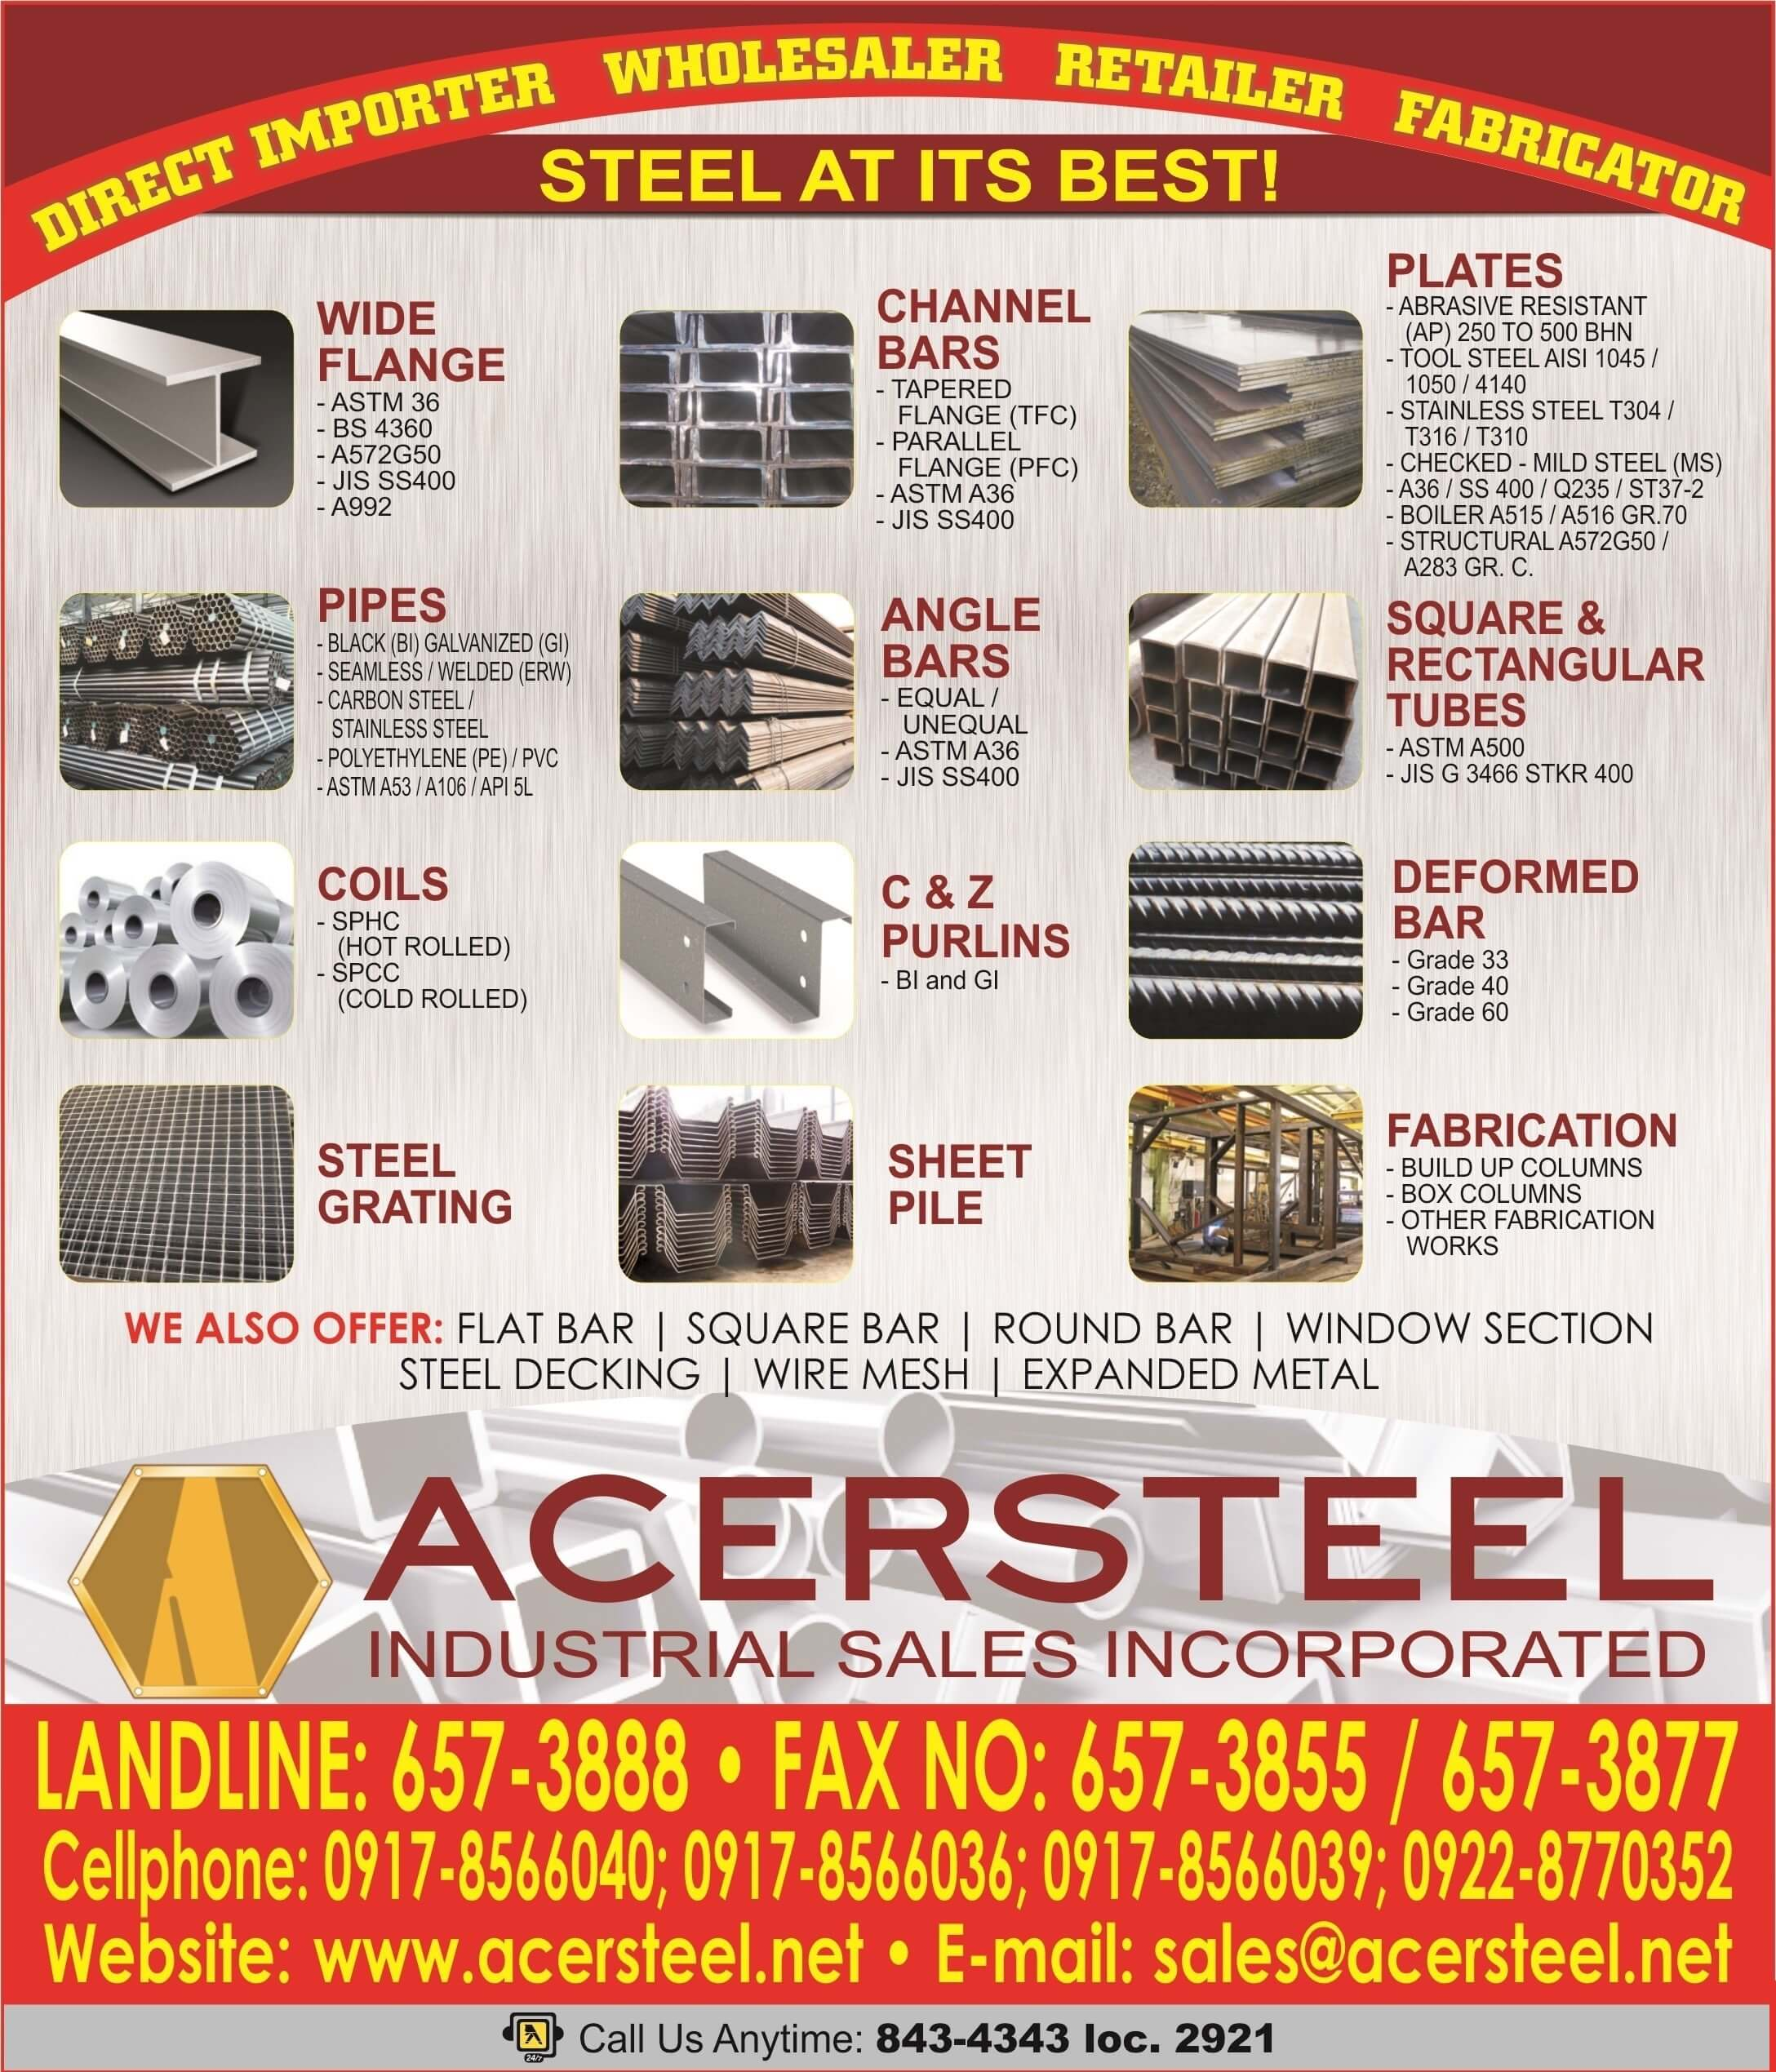 Acersteel - The Most Trusted Supplier of High Quality Steel